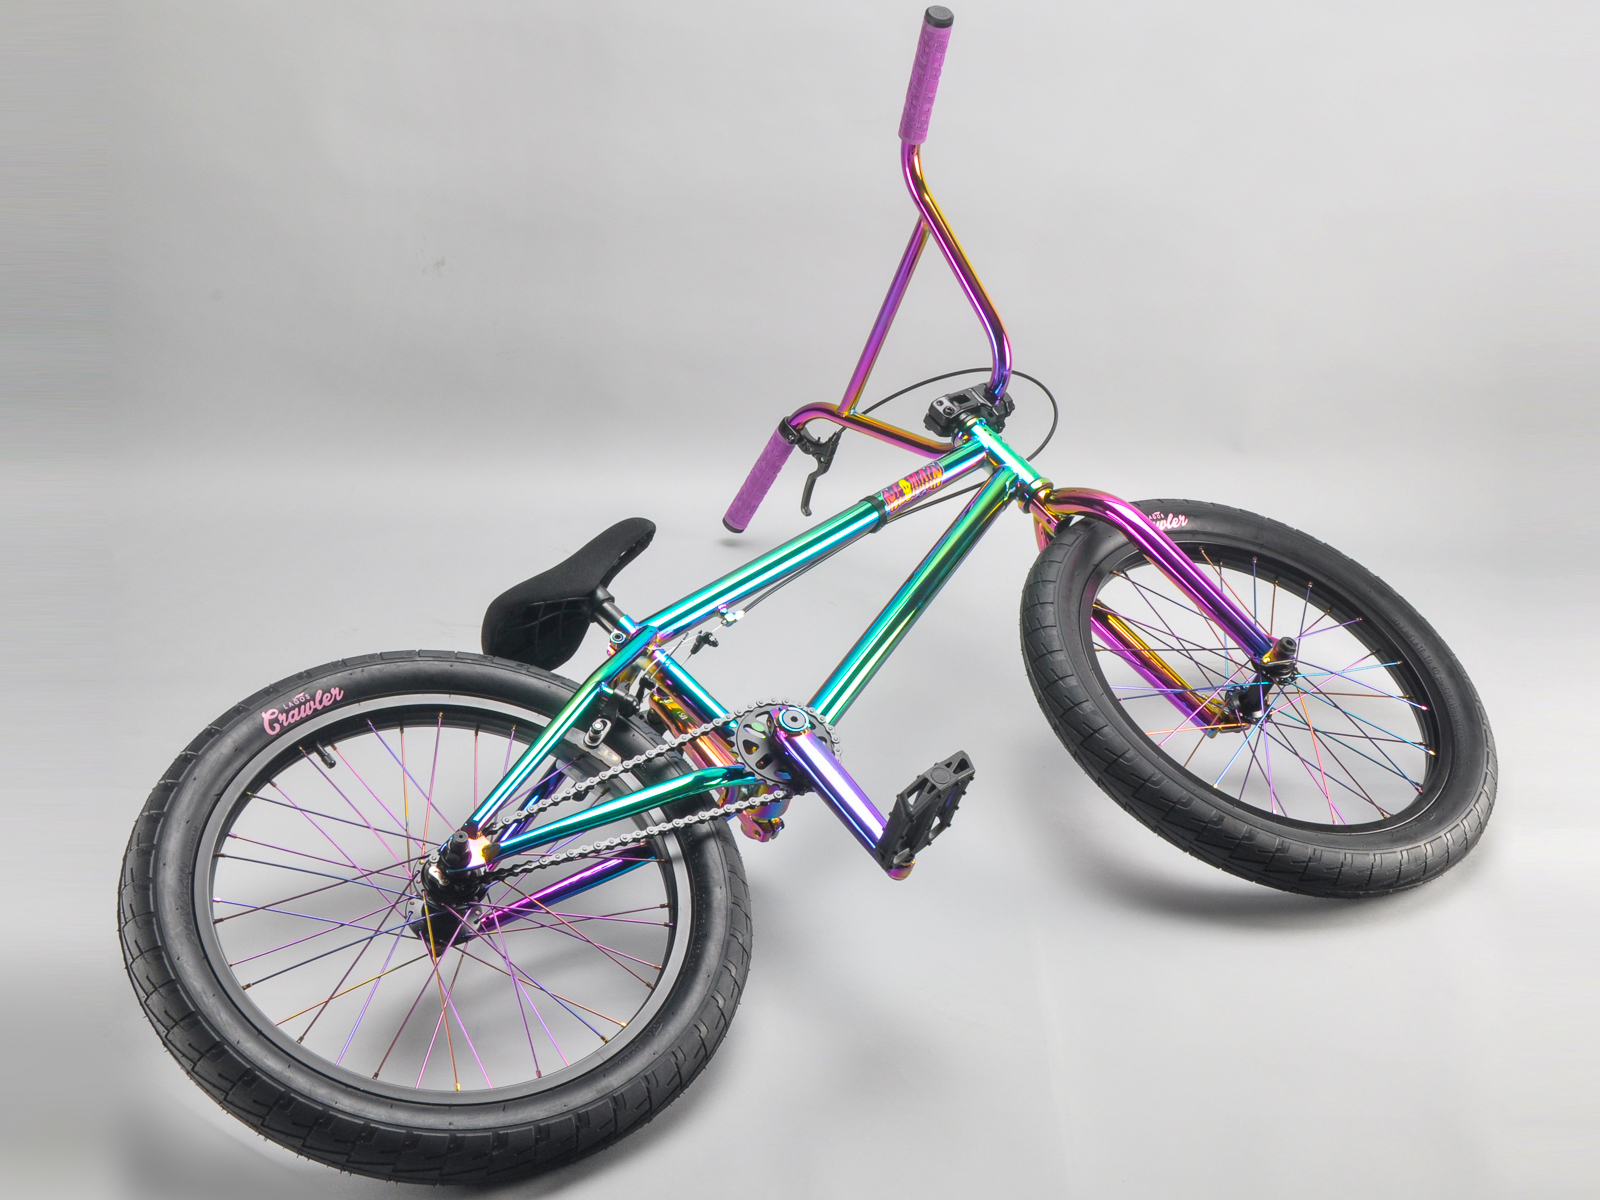 20 zoll mafiabikes bmx bike neomain oilslick 4130 chromoly harry main ebay. Black Bedroom Furniture Sets. Home Design Ideas